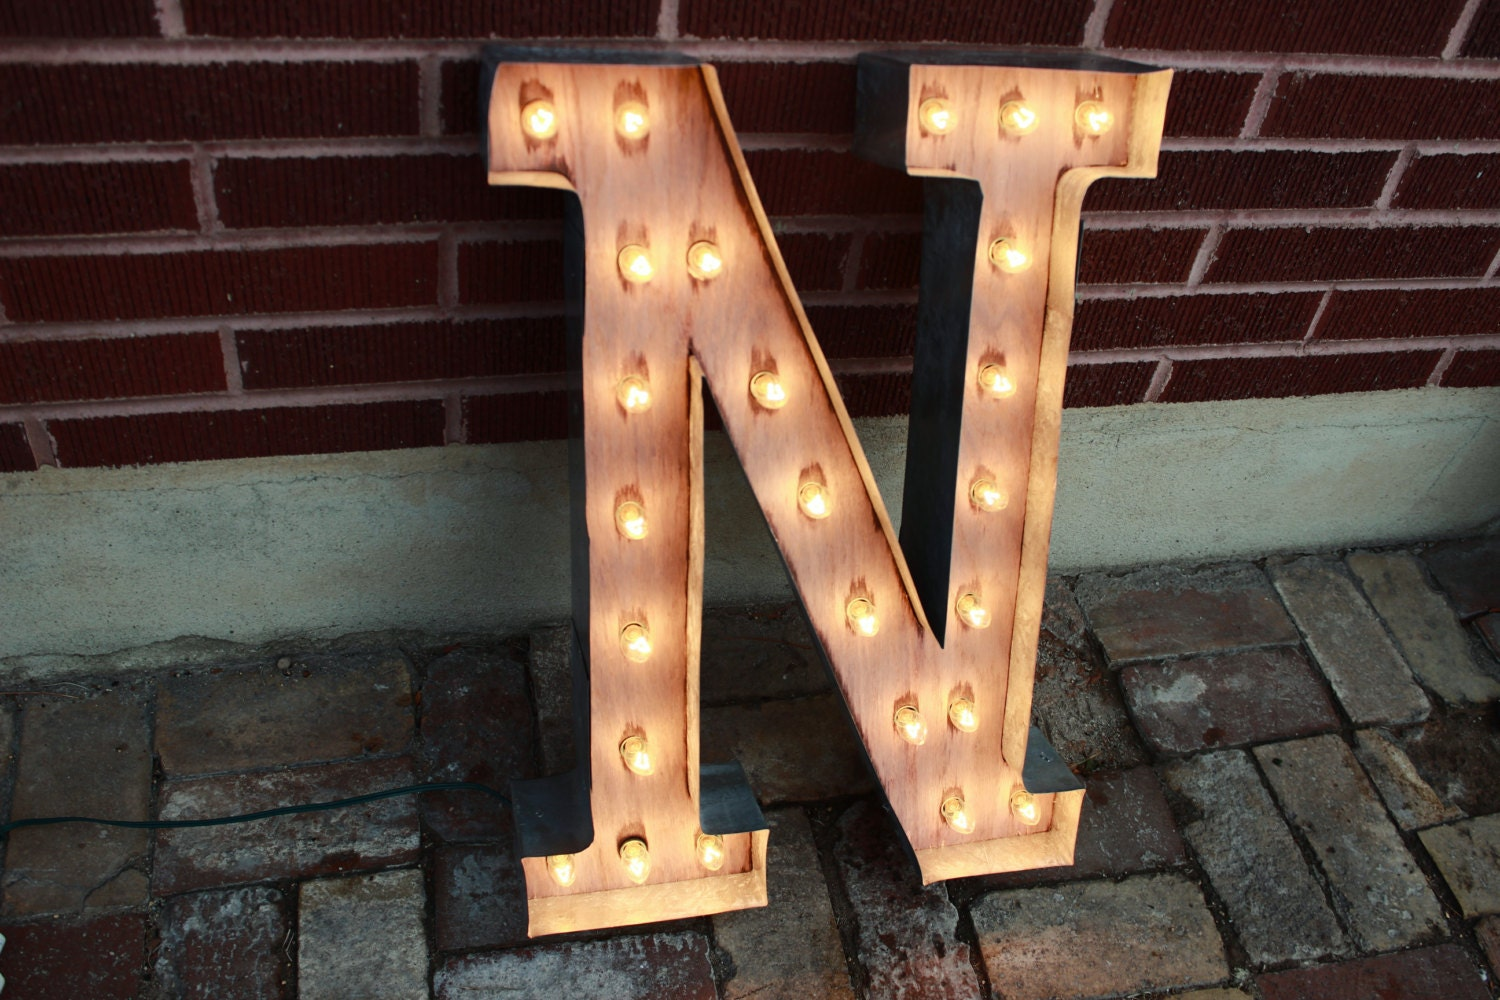 marquee light up letters marquee light up letters large letters letter lights 23581 | il fullxfull.706059512 nzob